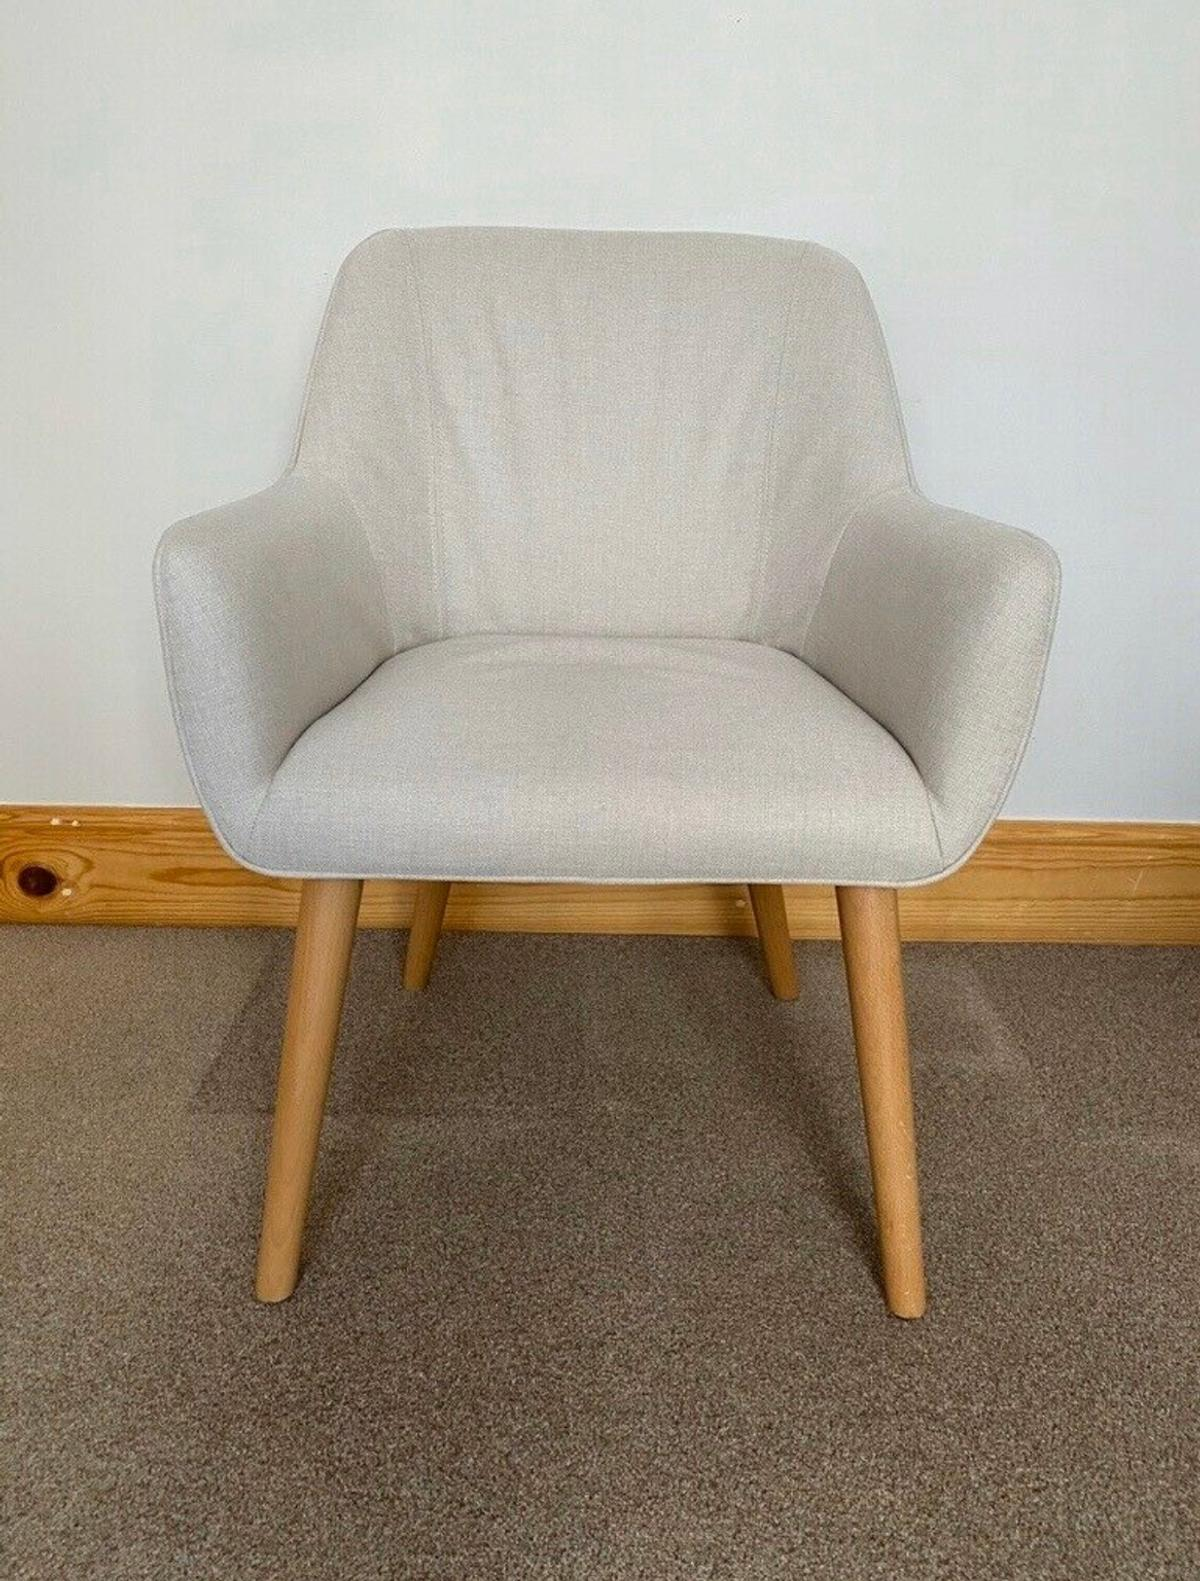 Dunelm Marstrand Chair Natural in LE5 Leicester for £30.00